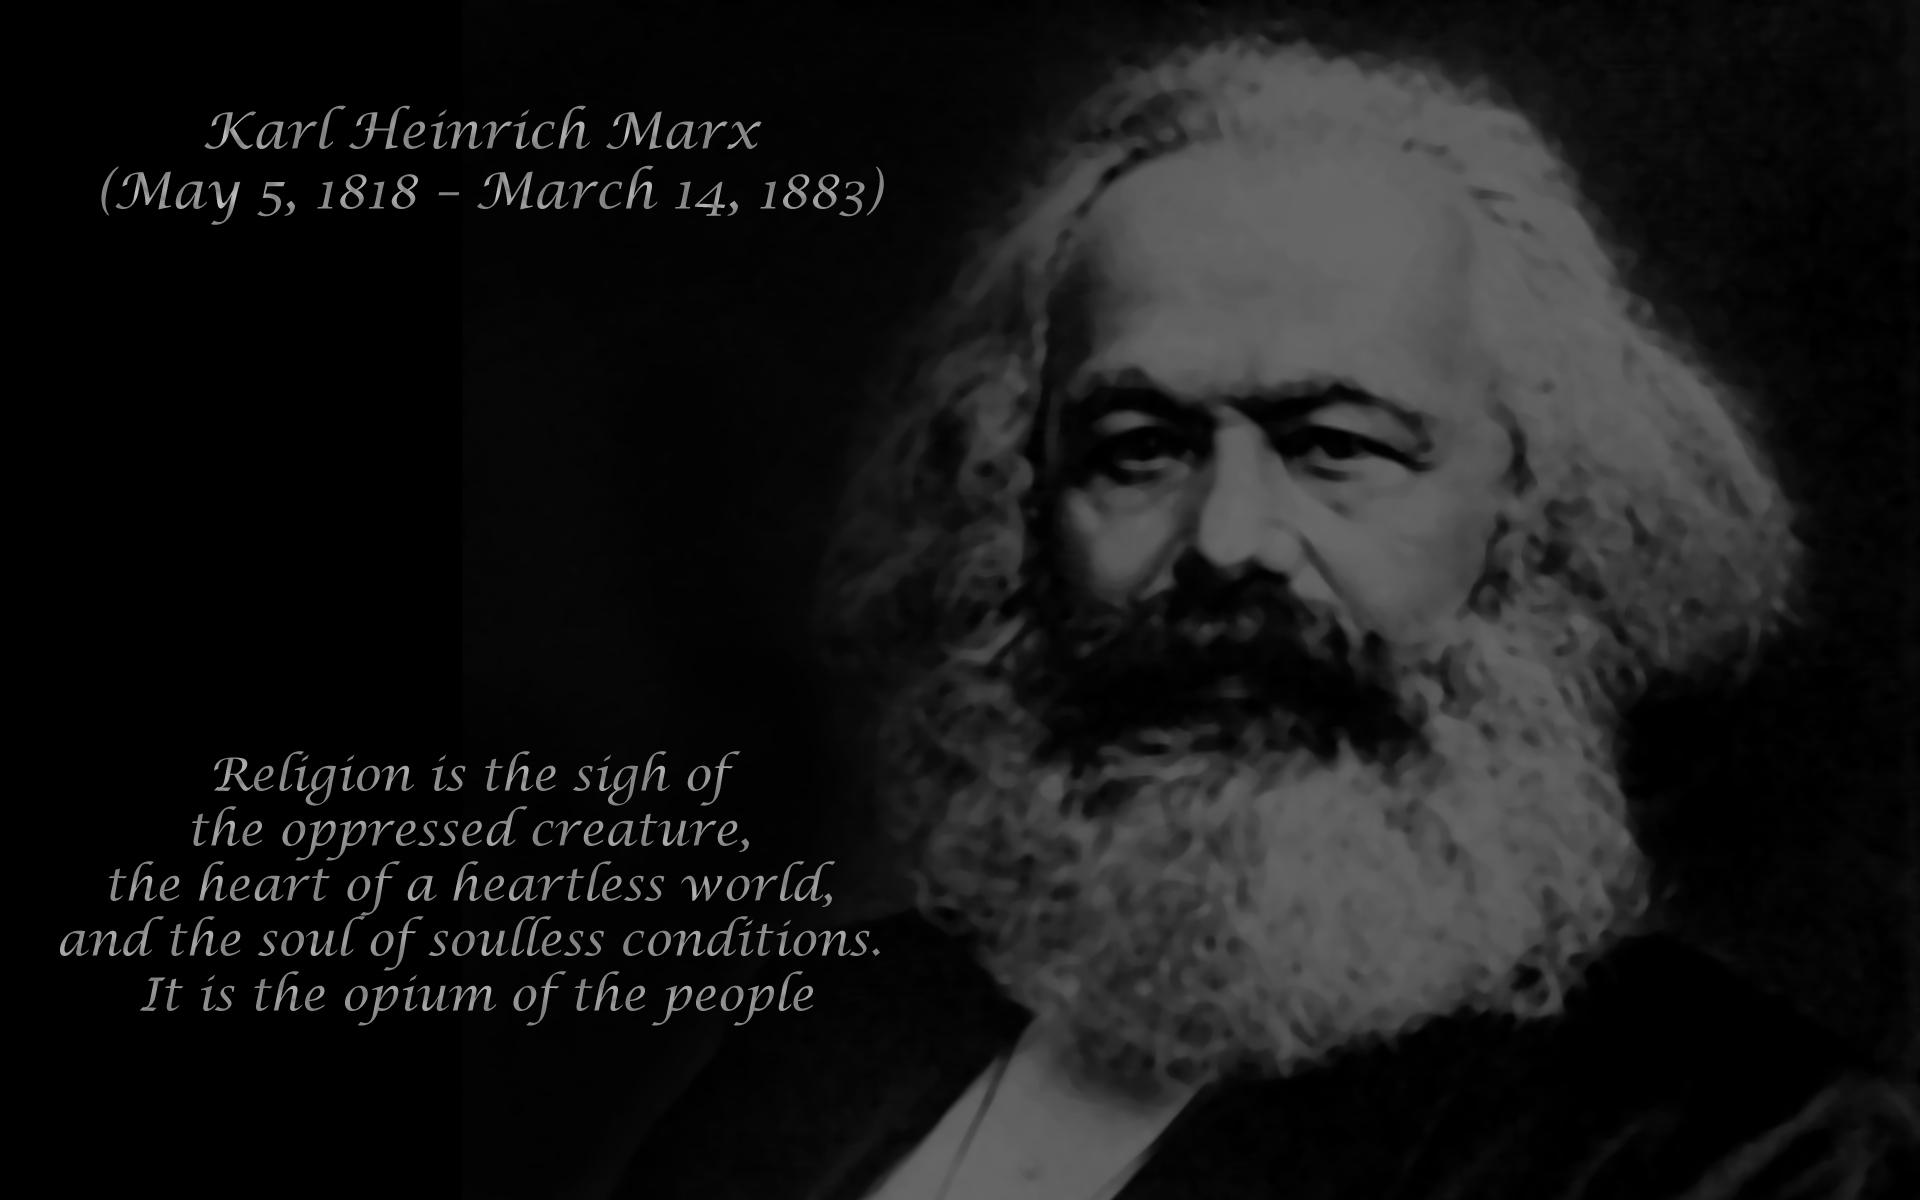 a biography of karl marx a communist philosopher Karl marx was the founder of modern communist thought along with friedrich engels this movement, while noble in intention philosophy pages.